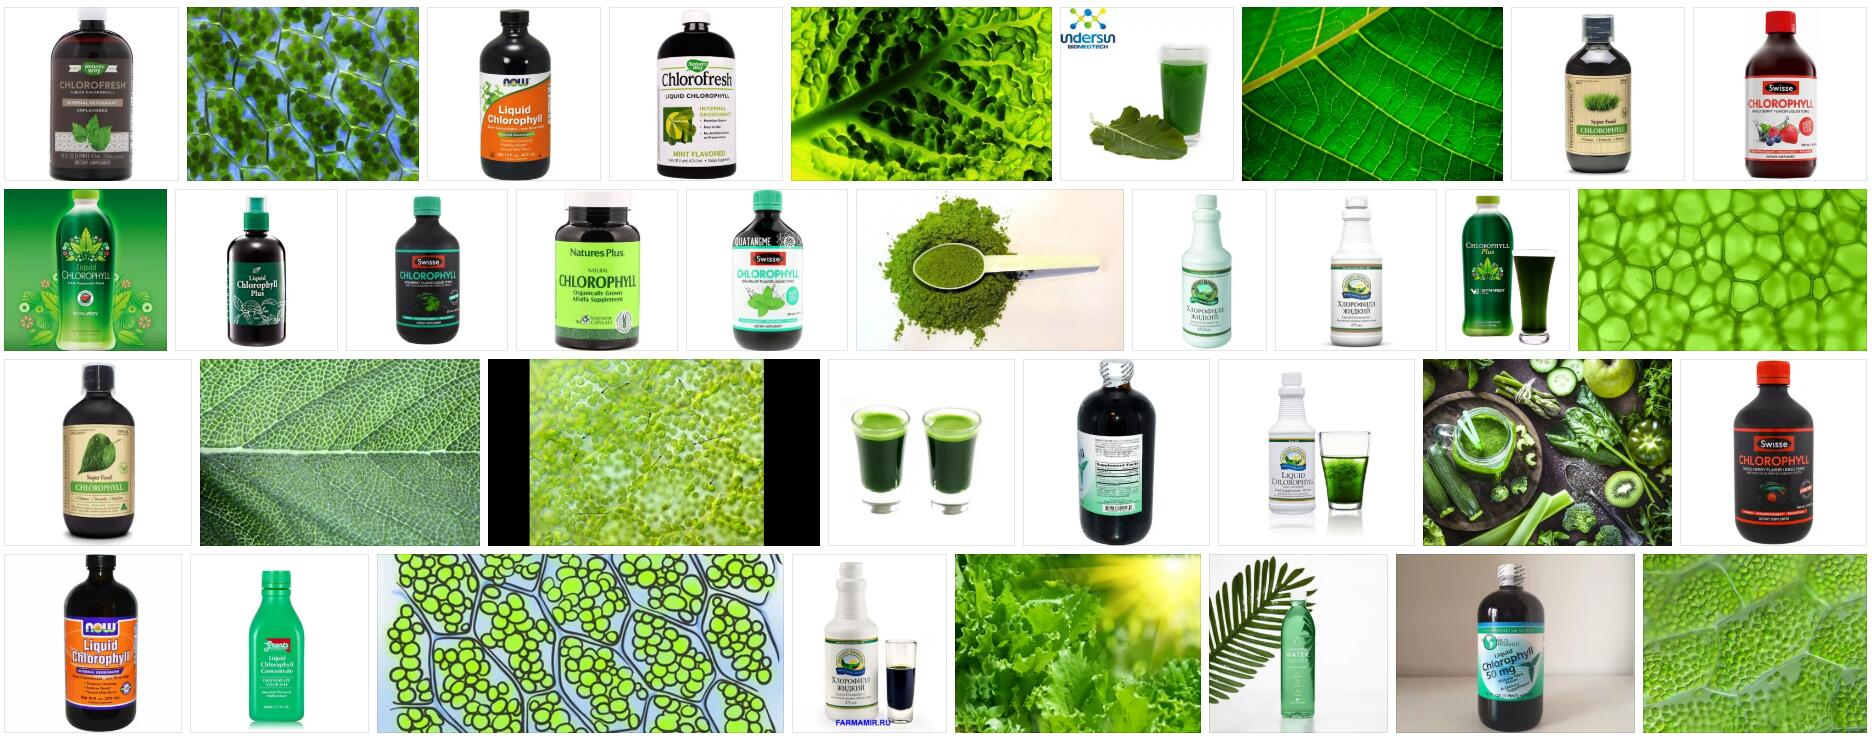 What is Chlorophyll